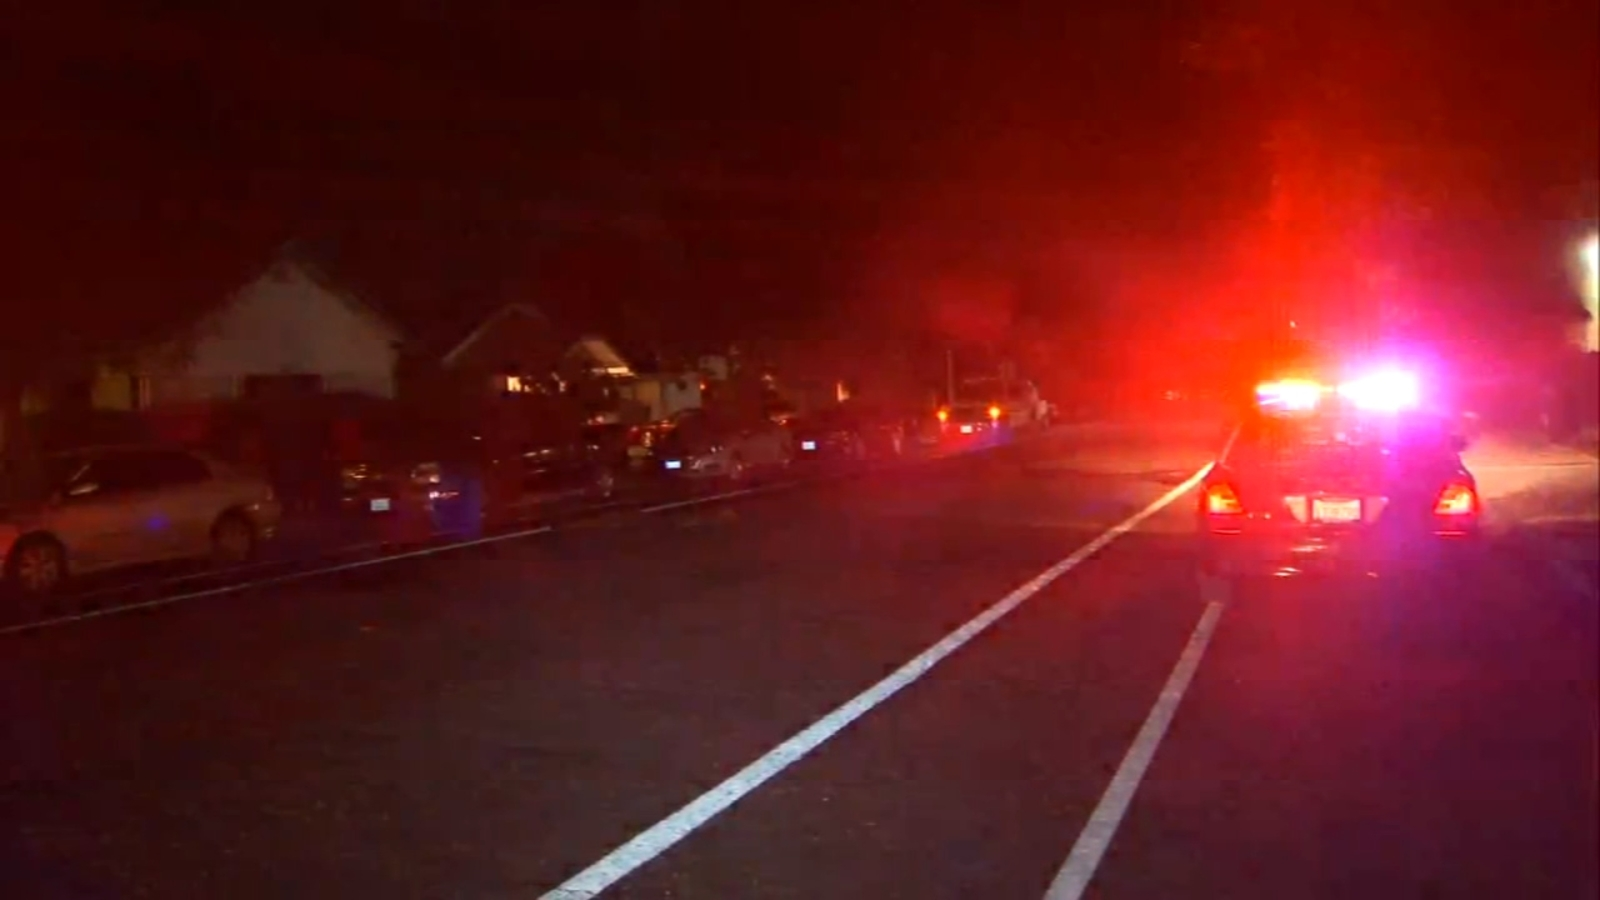 68-year-old man killed in Reedley house fire